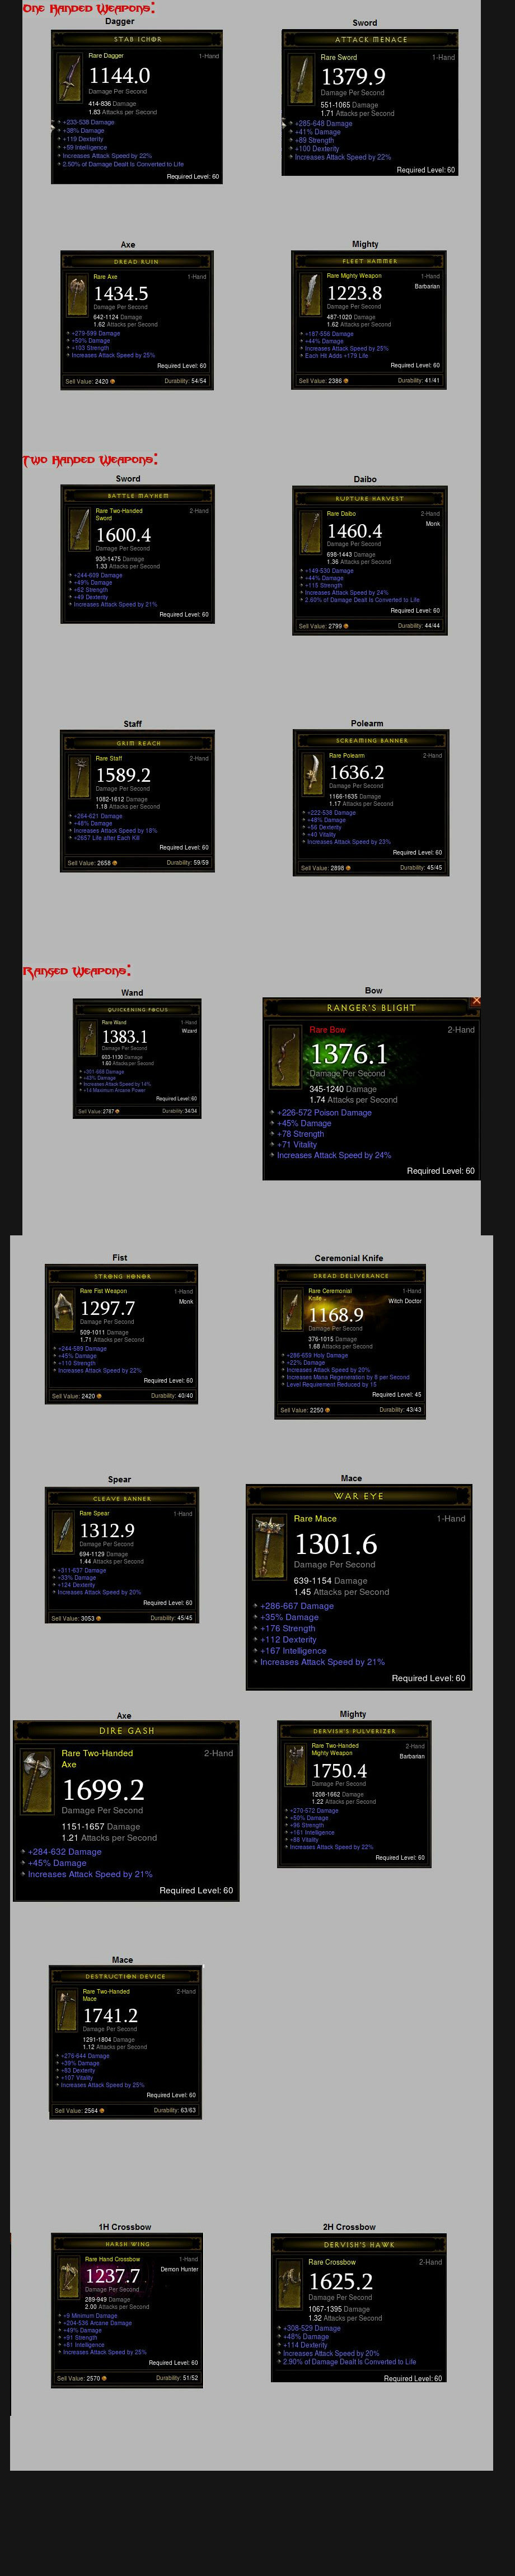 Diablo 3 Highest DPS Weapons